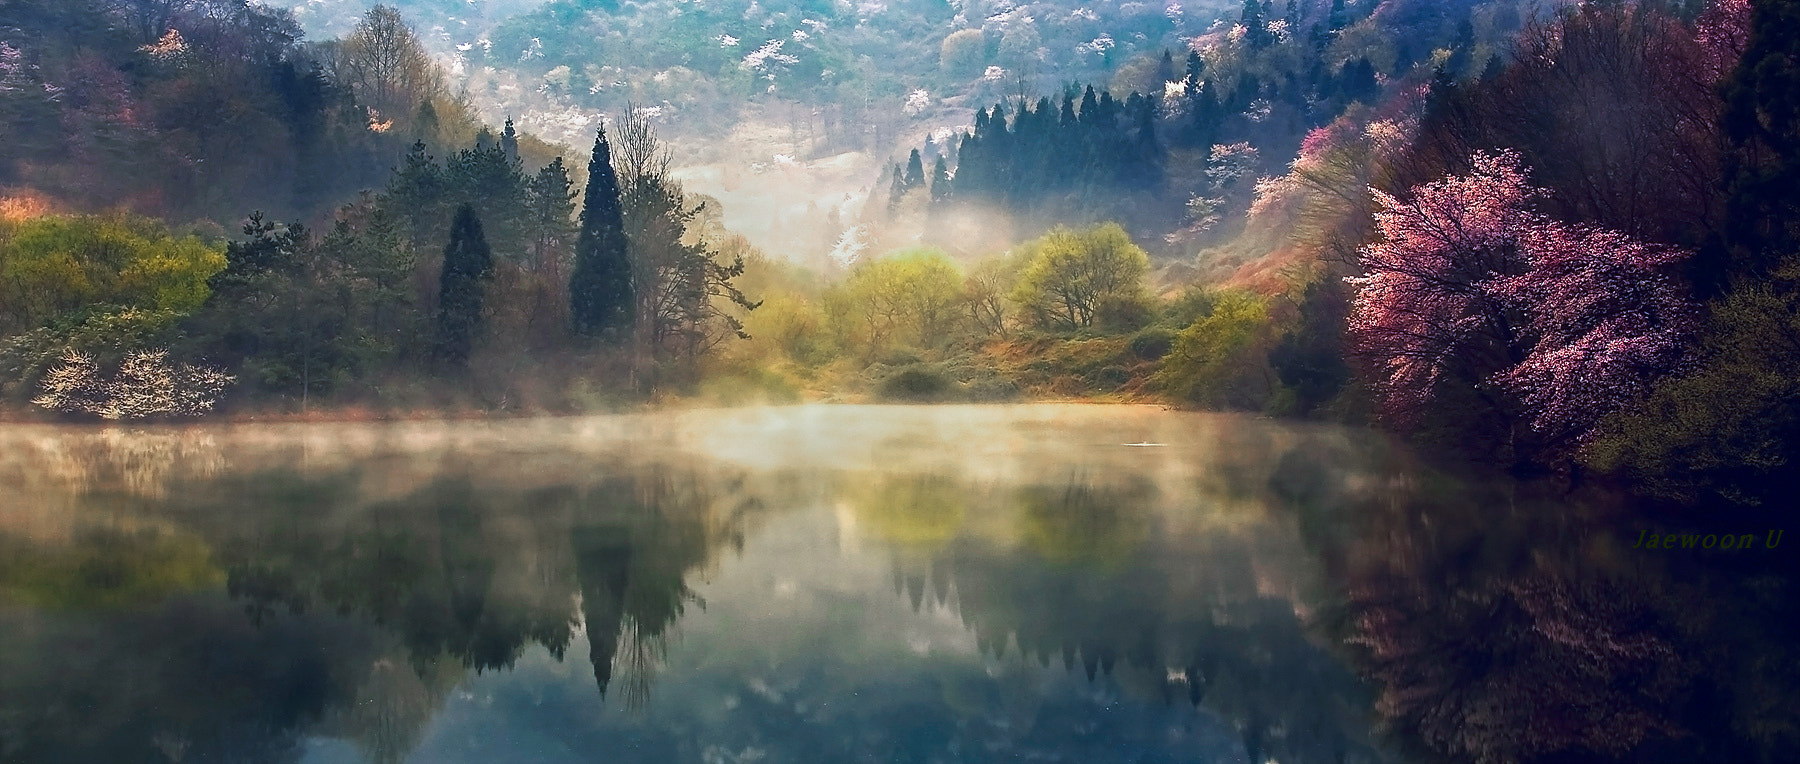 Photograph Memory of spring by Jaewoon U on 500px